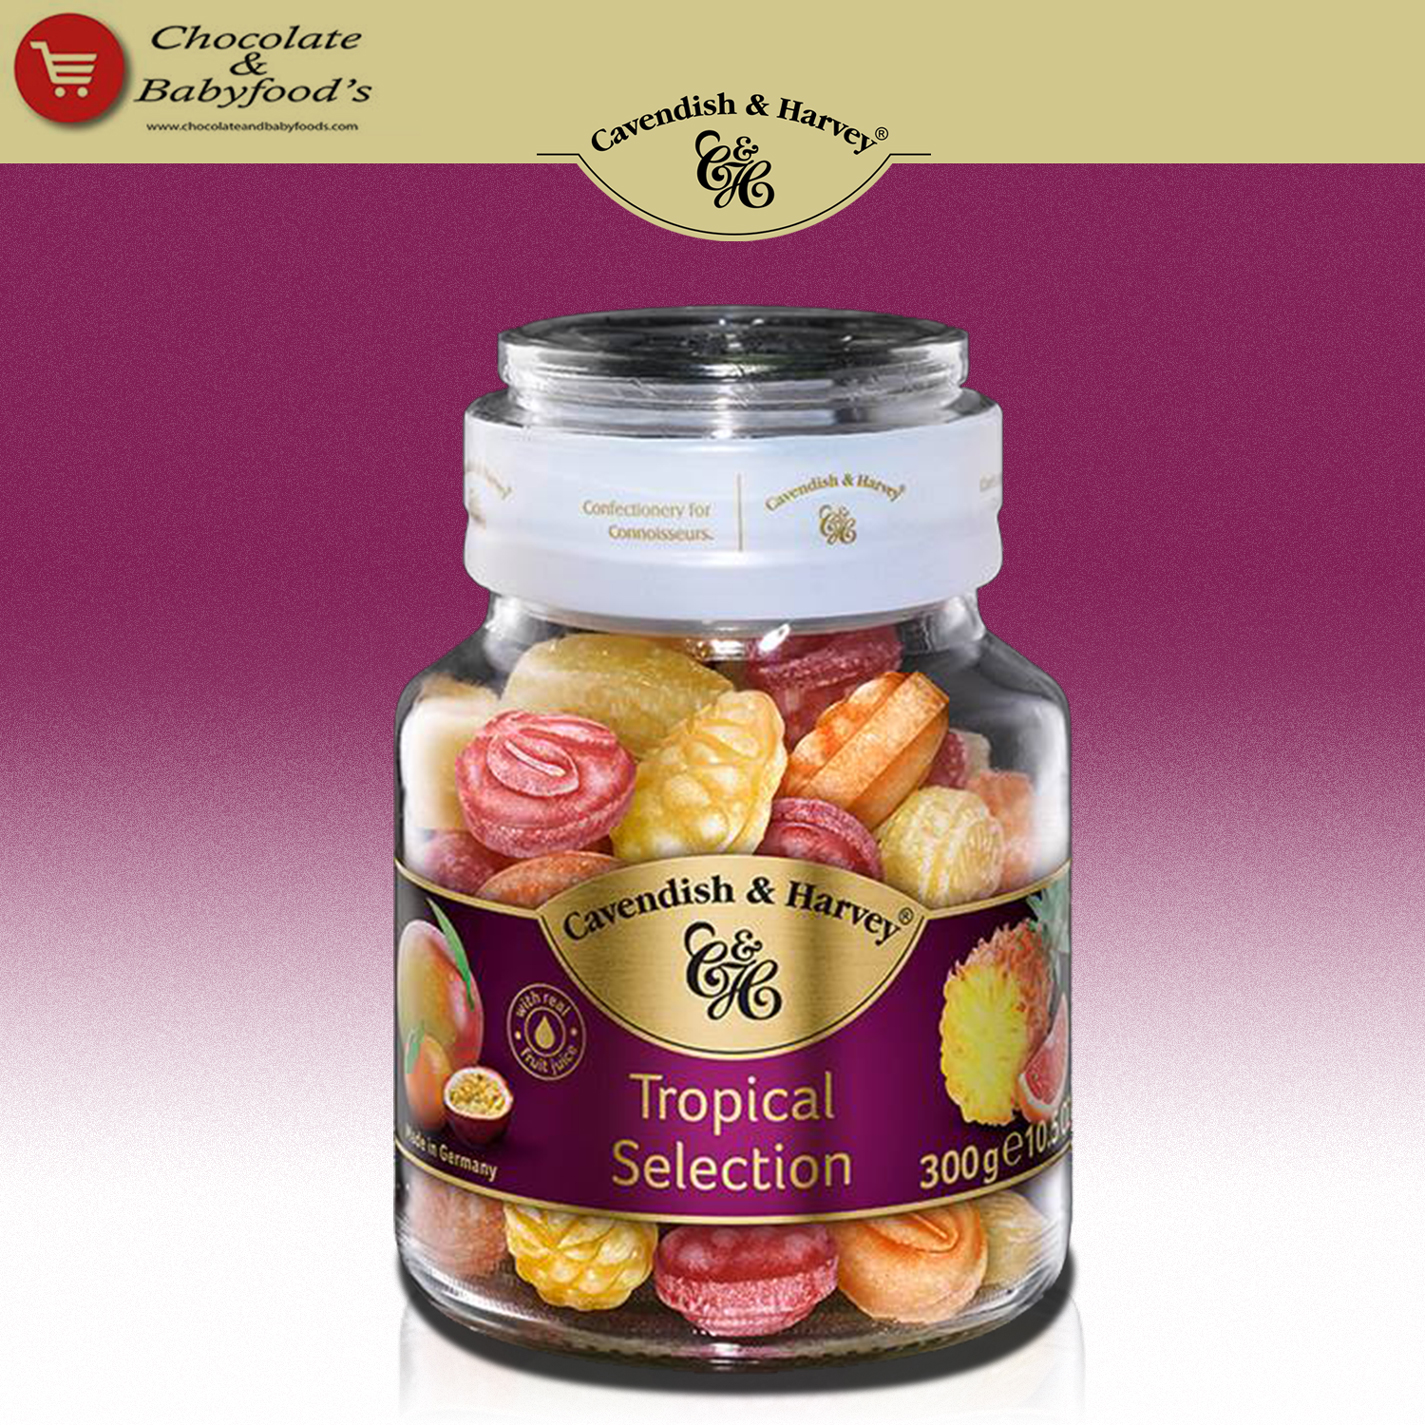 Cavendish & Harvey Tropical Selections 300g